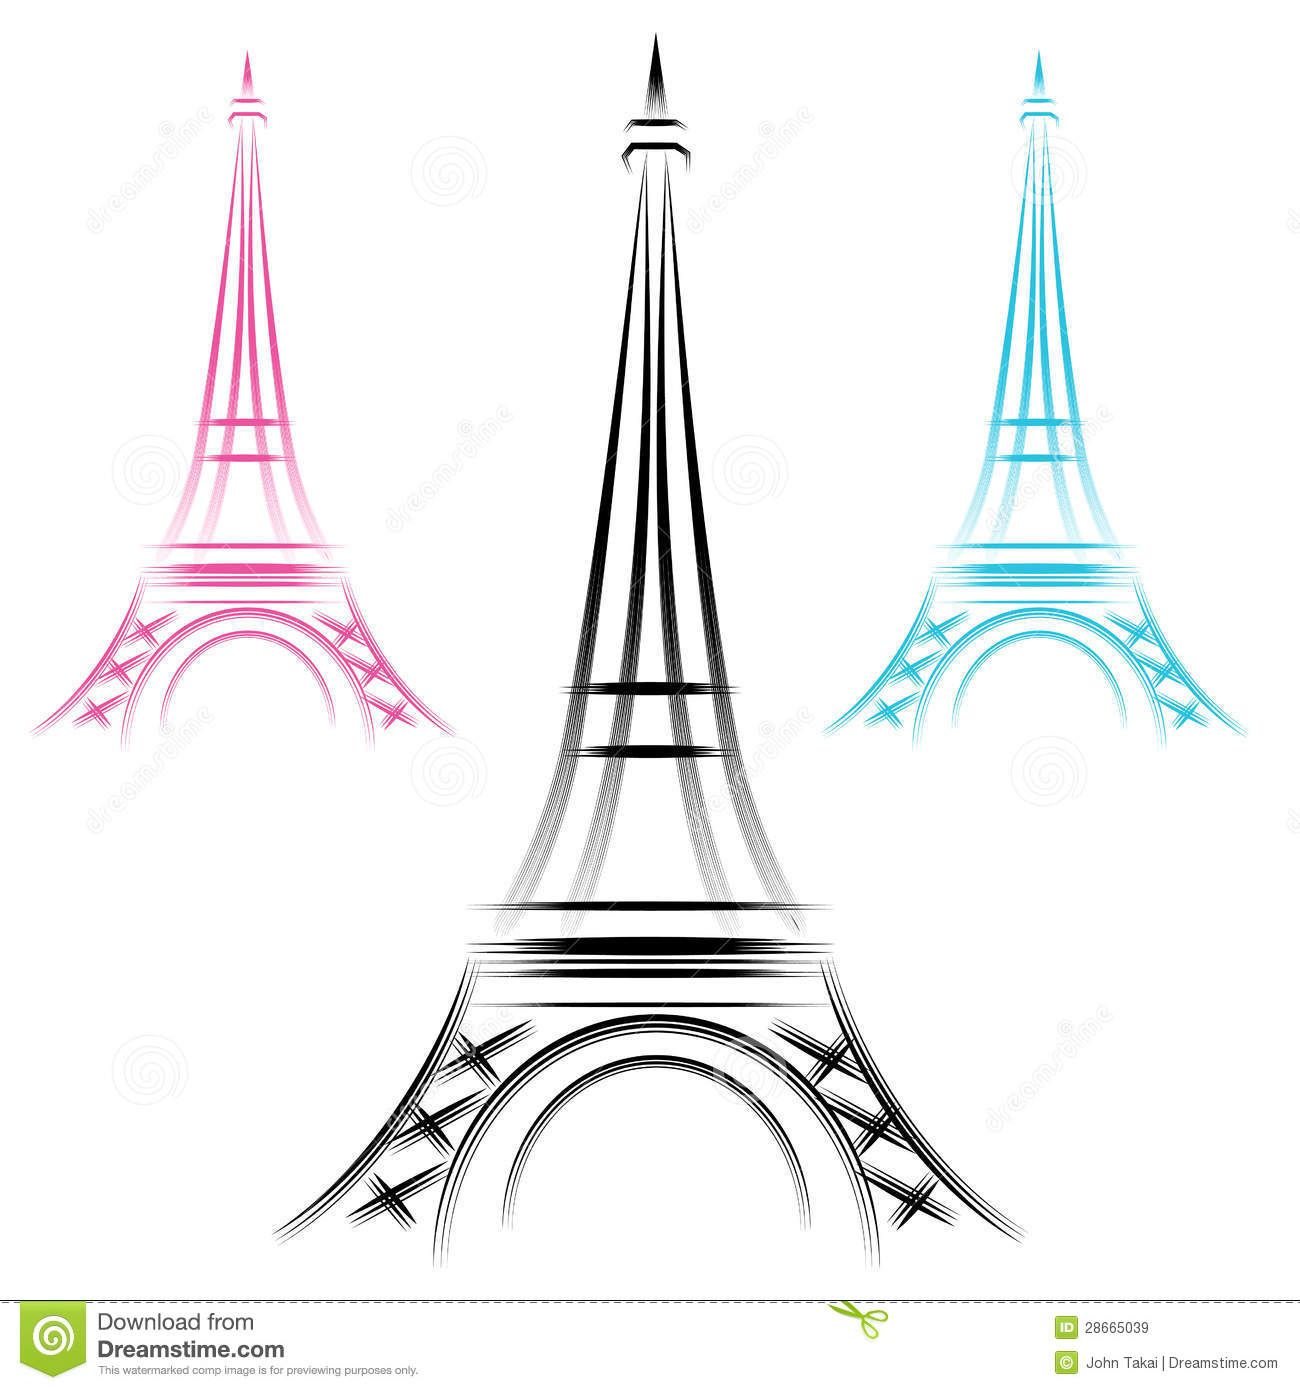 tour eiffel dessin recherche google tour eiffel. Black Bedroom Furniture Sets. Home Design Ideas